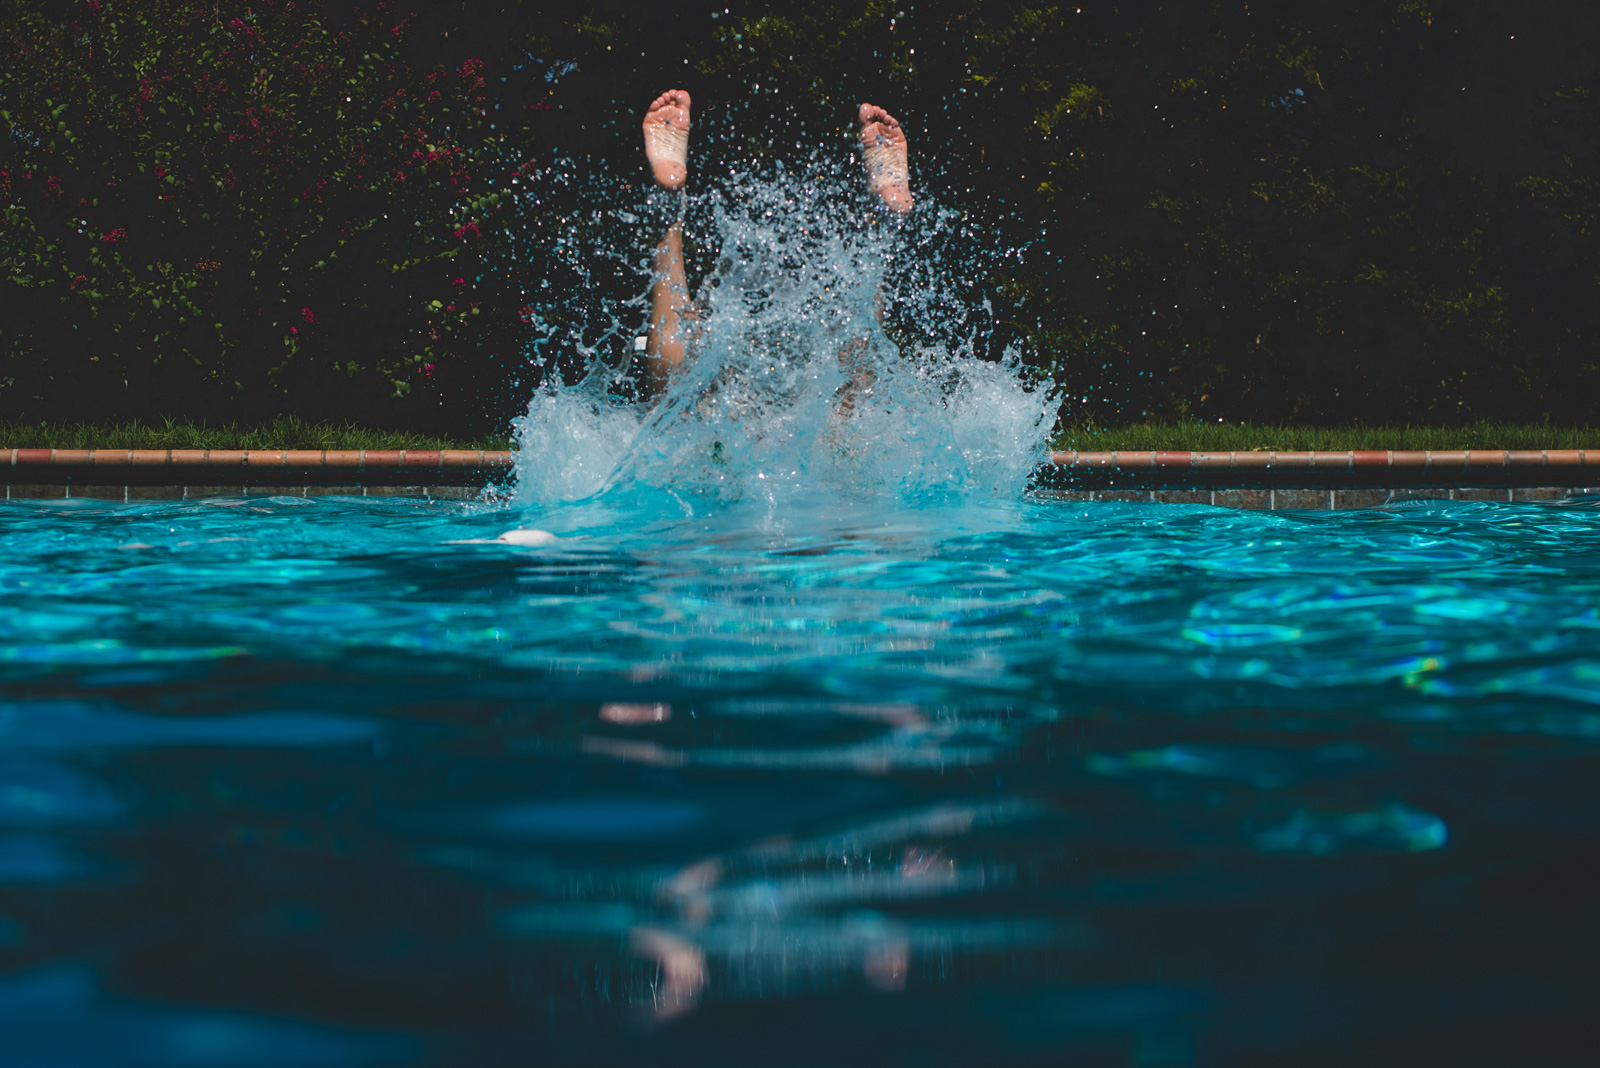 child diving into pool with feet in air water splashing by natalie greenroyd